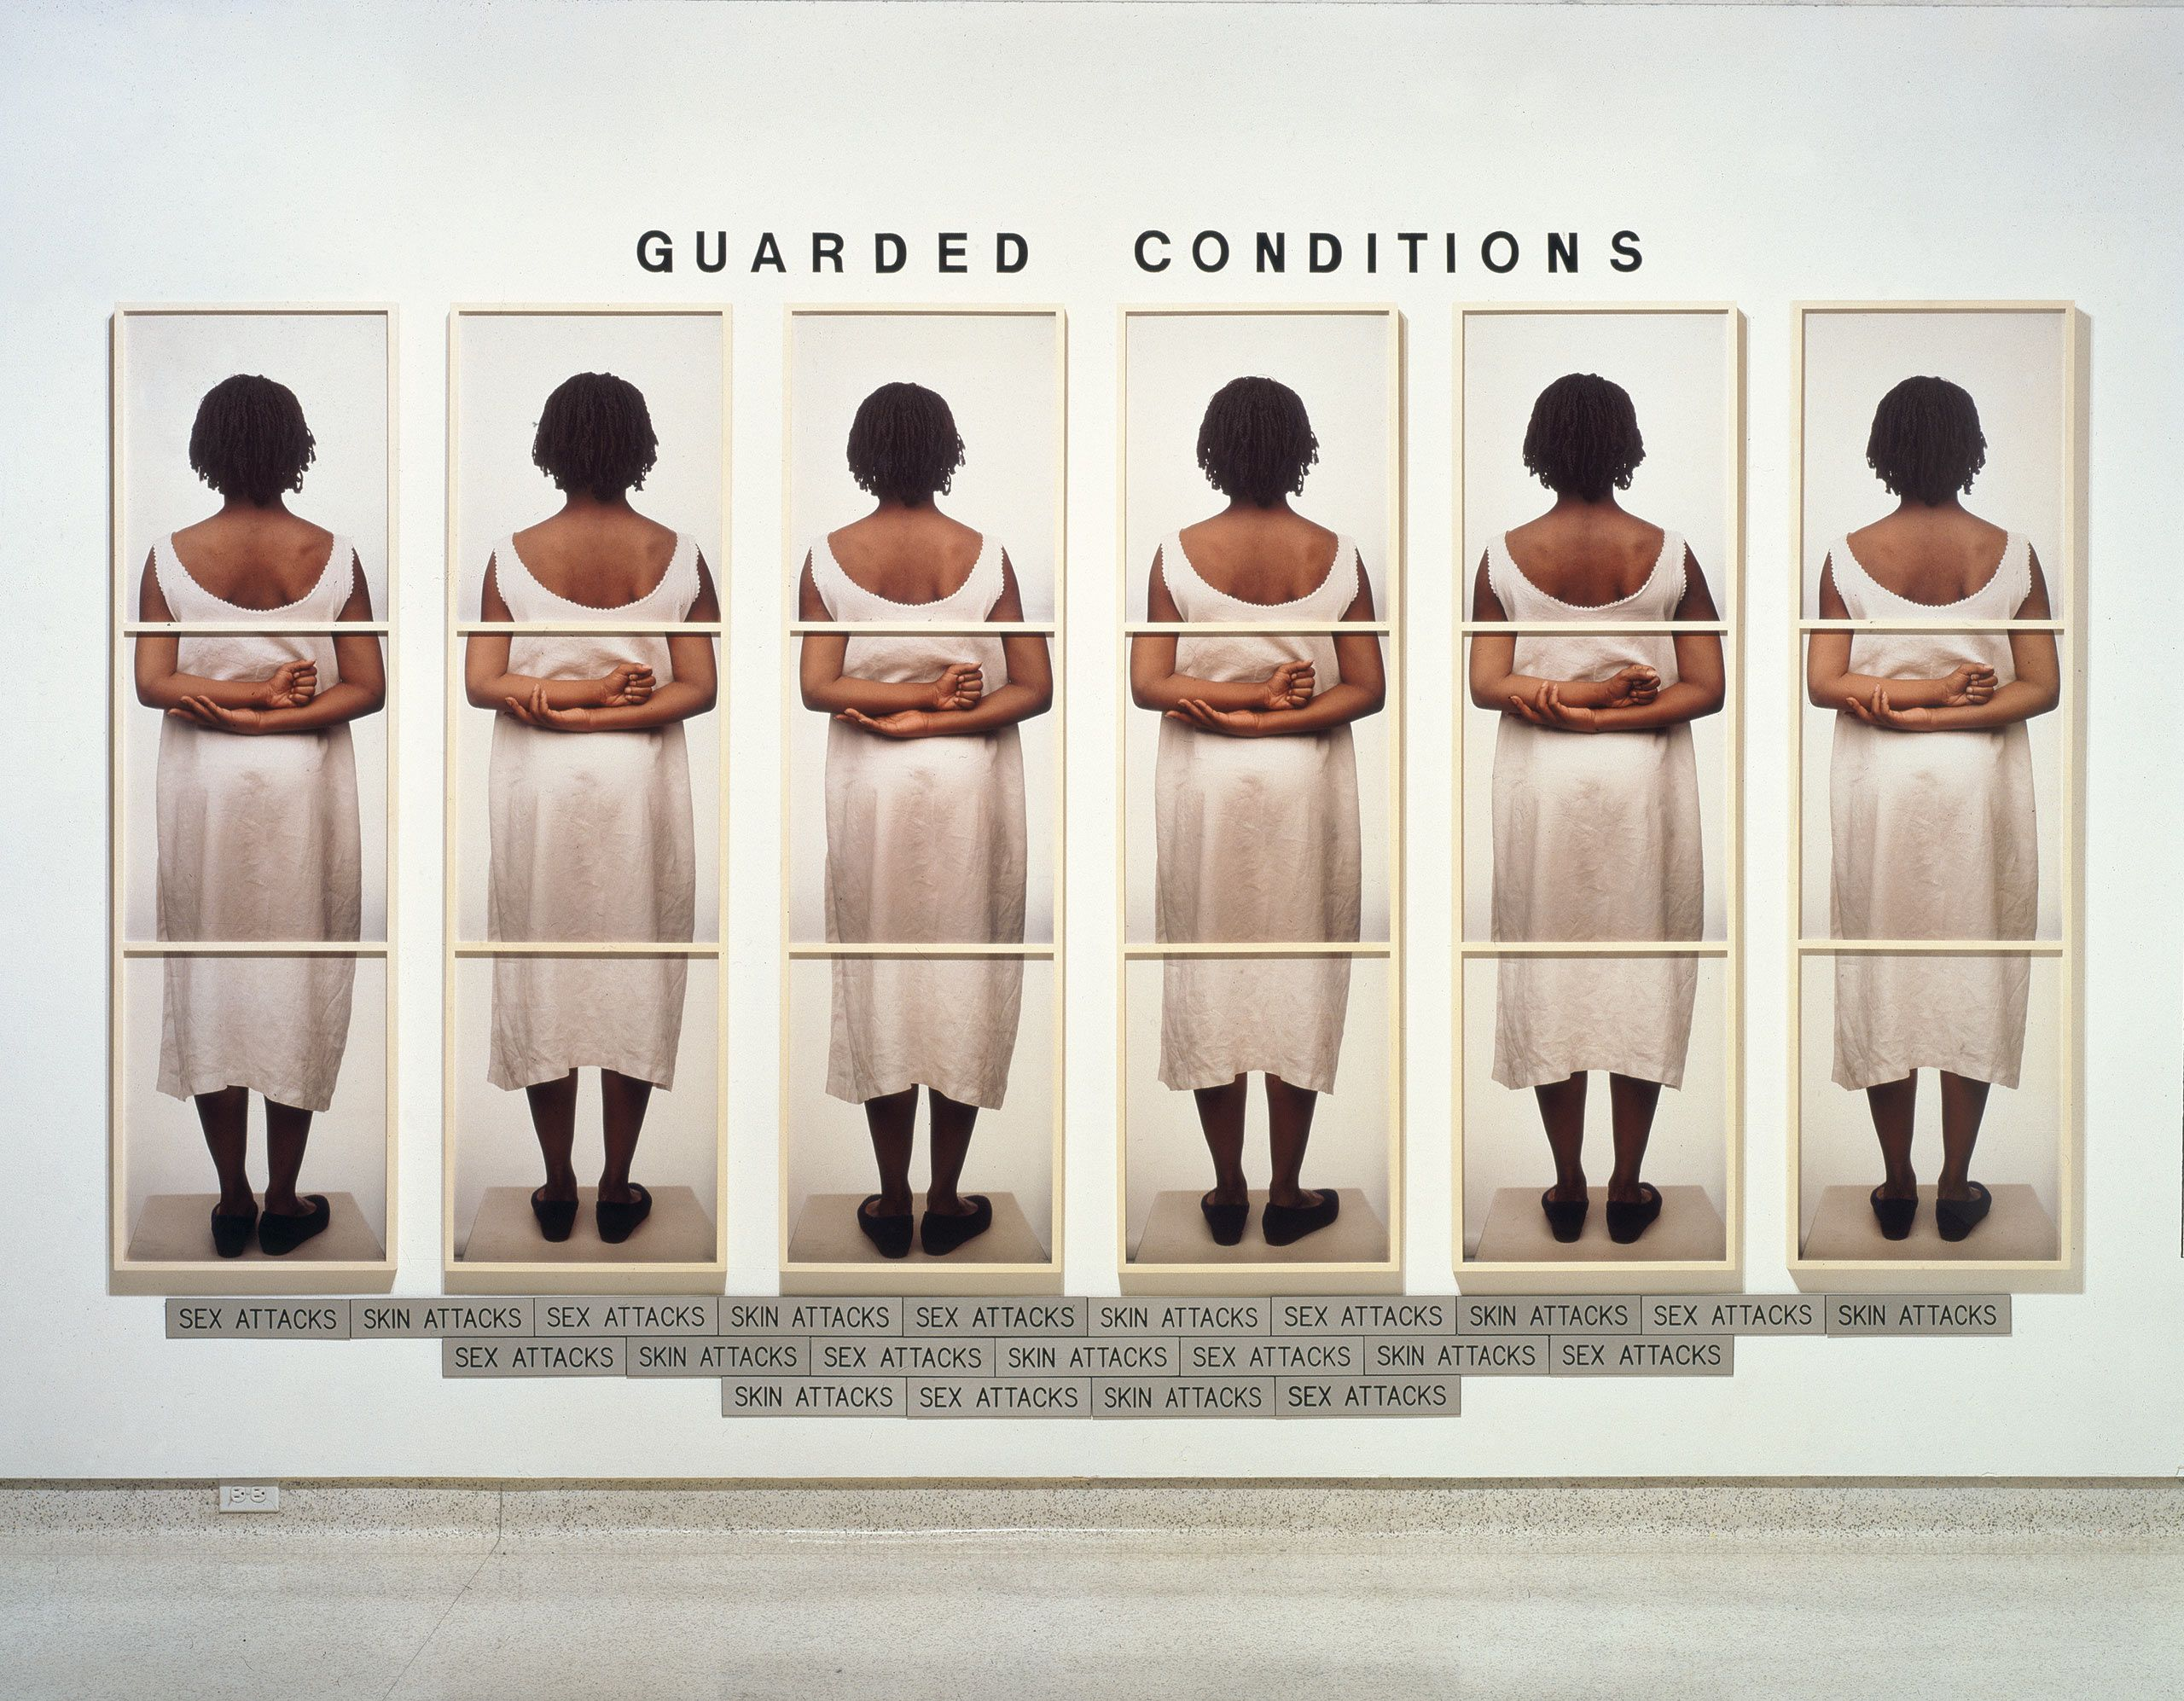 Guarded Conditions, 1989